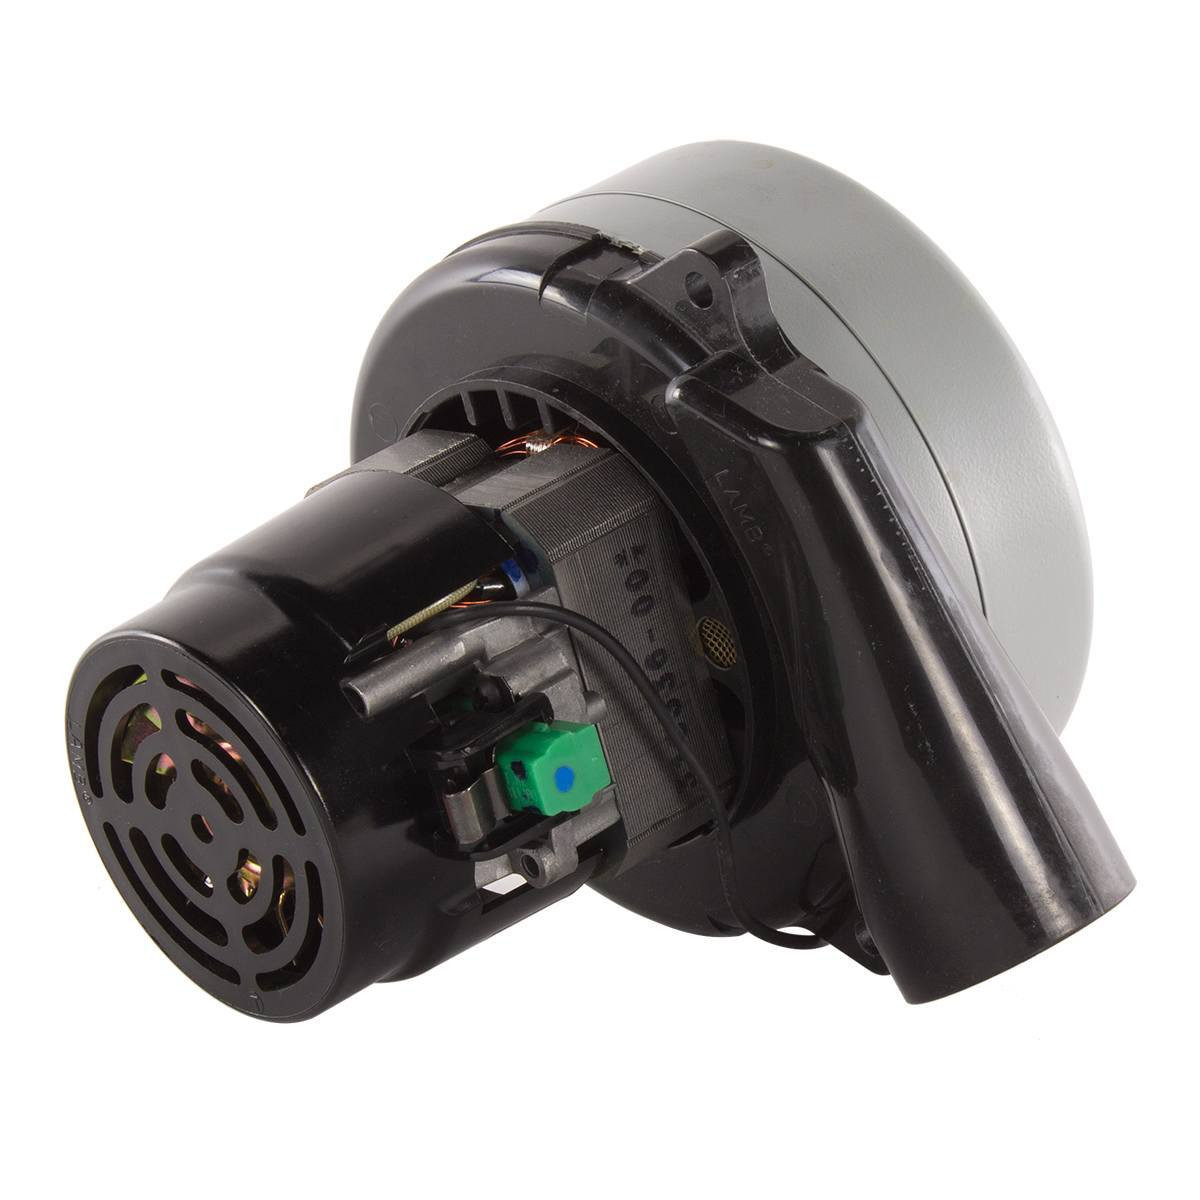 Carpet extractor 2 stage vacuum motor for trusted clean for Carpet extractor vacuum motor